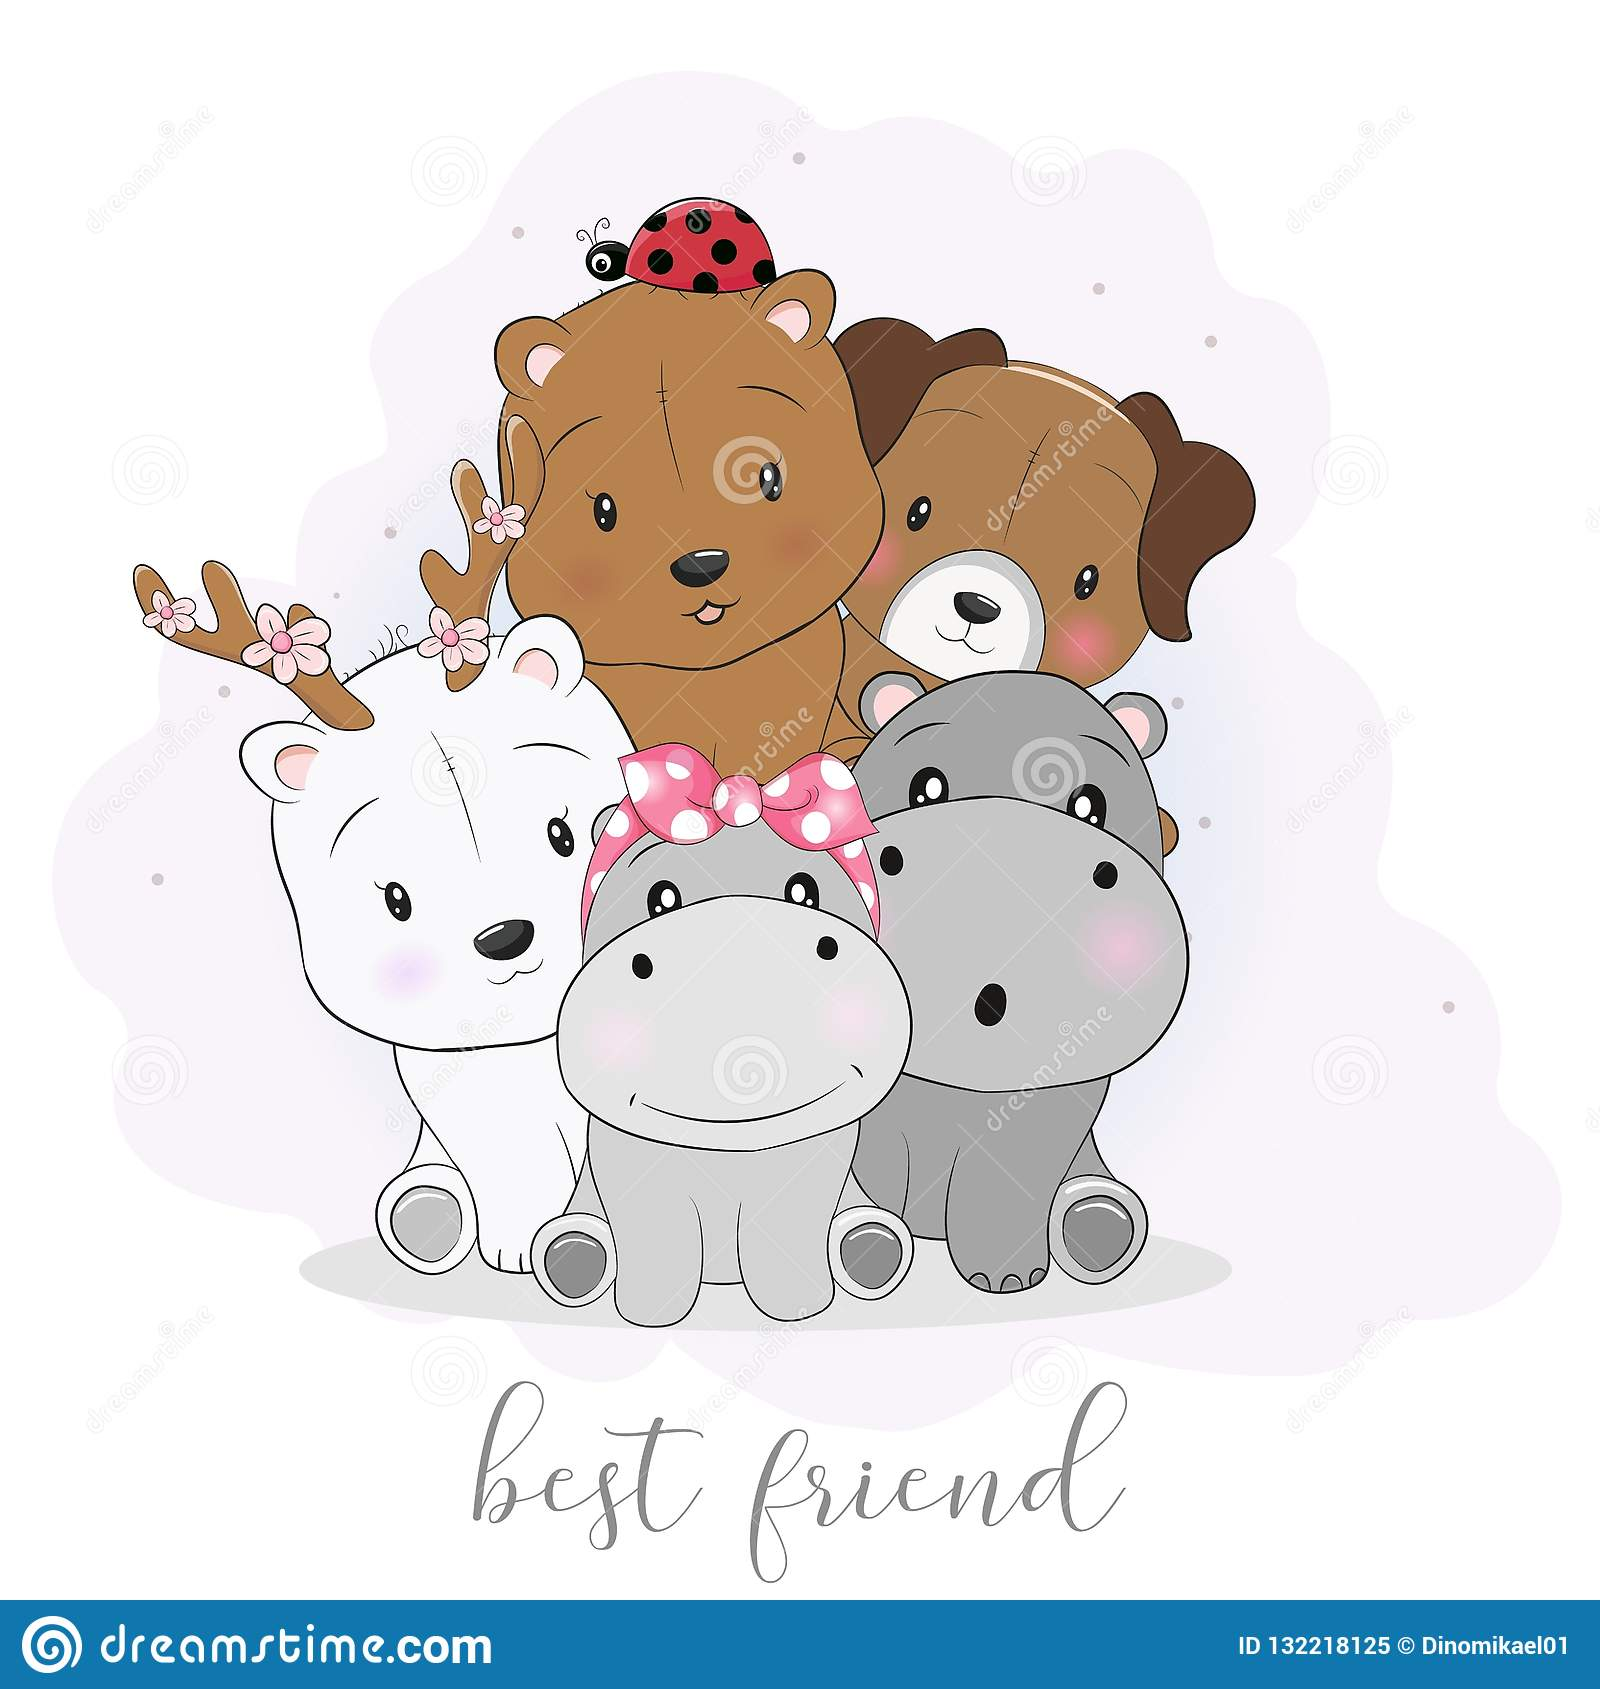 Cute Best Friend Cartoon Animals Stock Vector Illustration Of Care